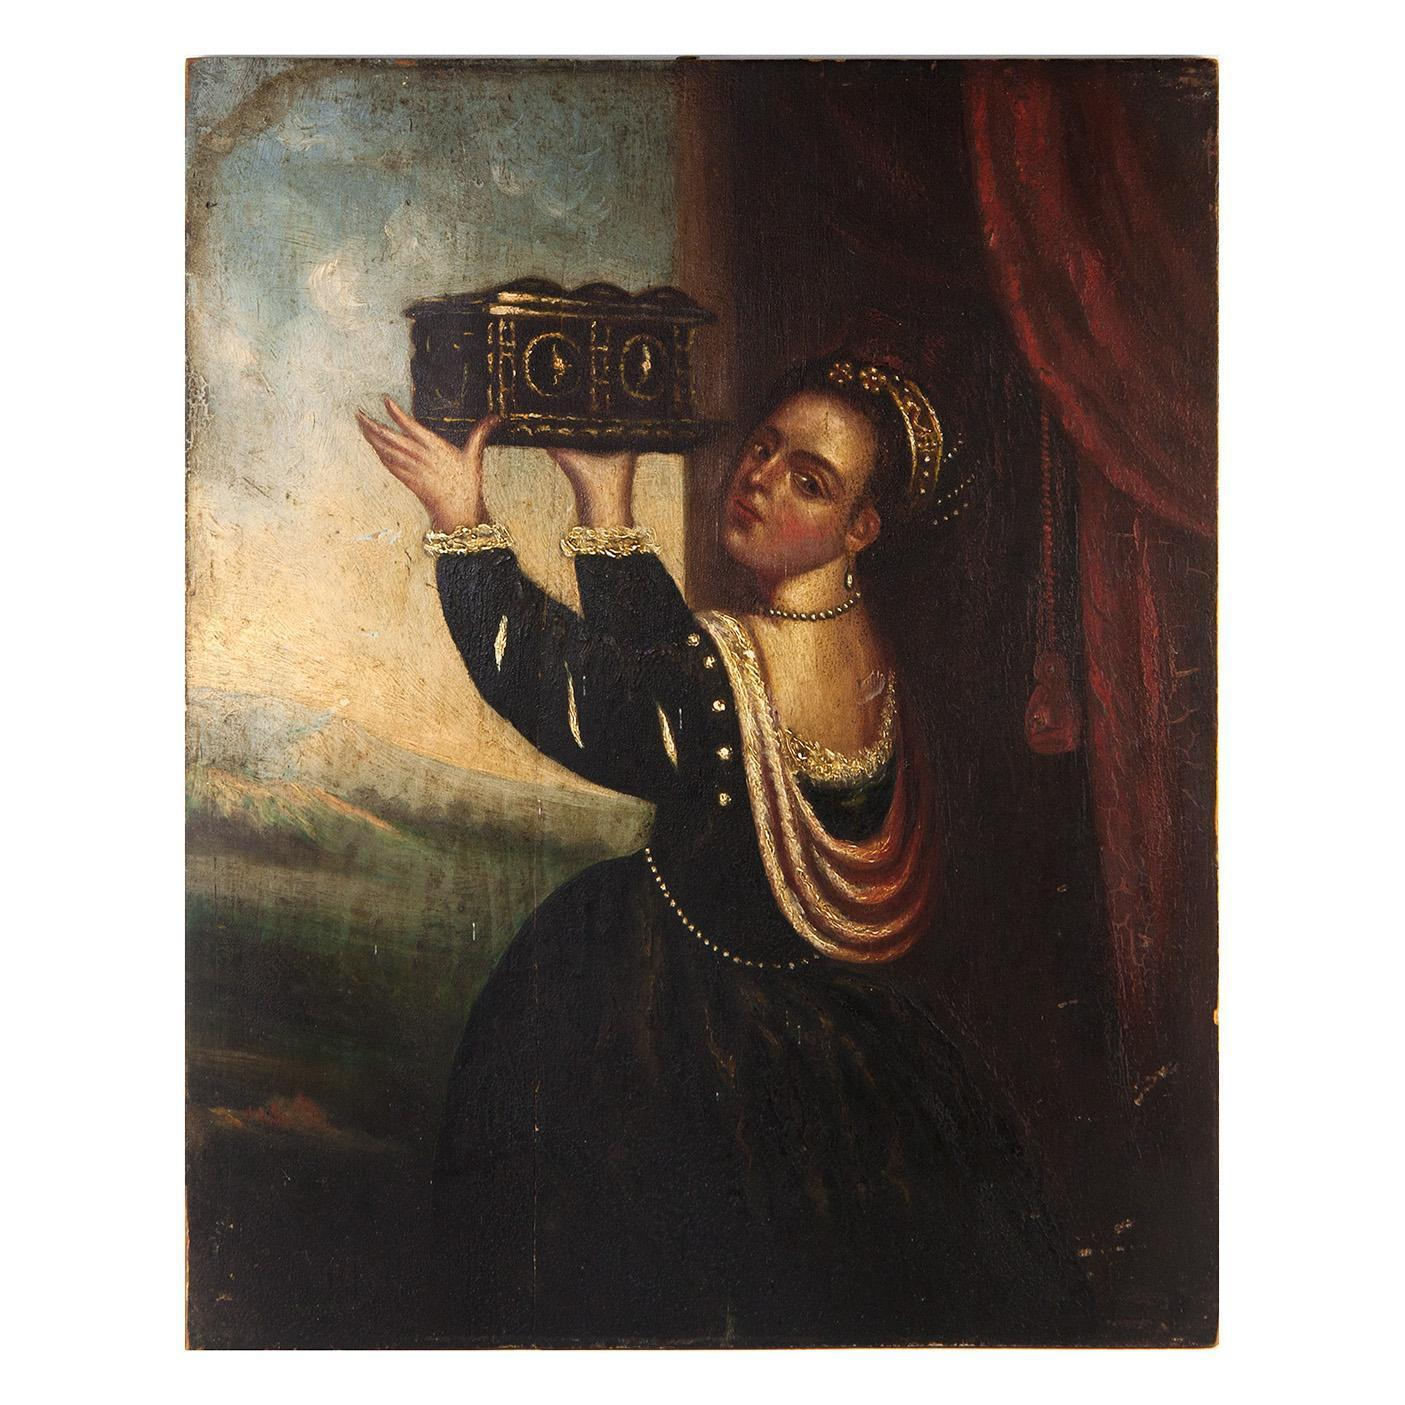 Antique Oil Painting, Renaissance Woman in Tiara, Holding Large Box